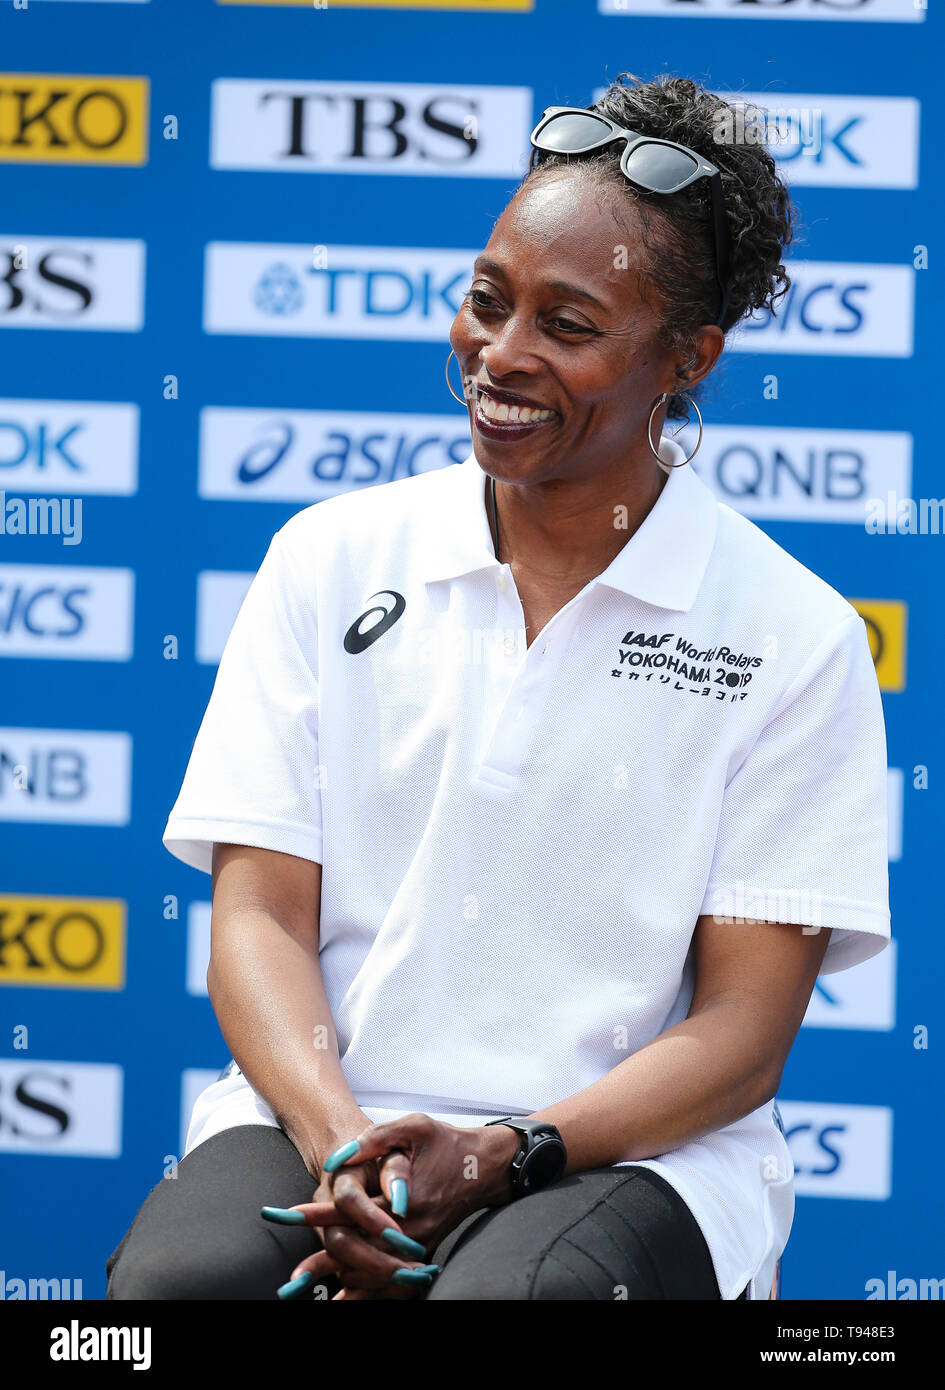 YOKOHAMA, JAPAN - MAY 10: Gail Devers during the official press conference of the 2019 IAAF World Relay Championships at the Nissan Stadium on May 10, 2019 in Yokohama, Japan. (Photo by Roger Sedres for the IAAF) - Stock Image